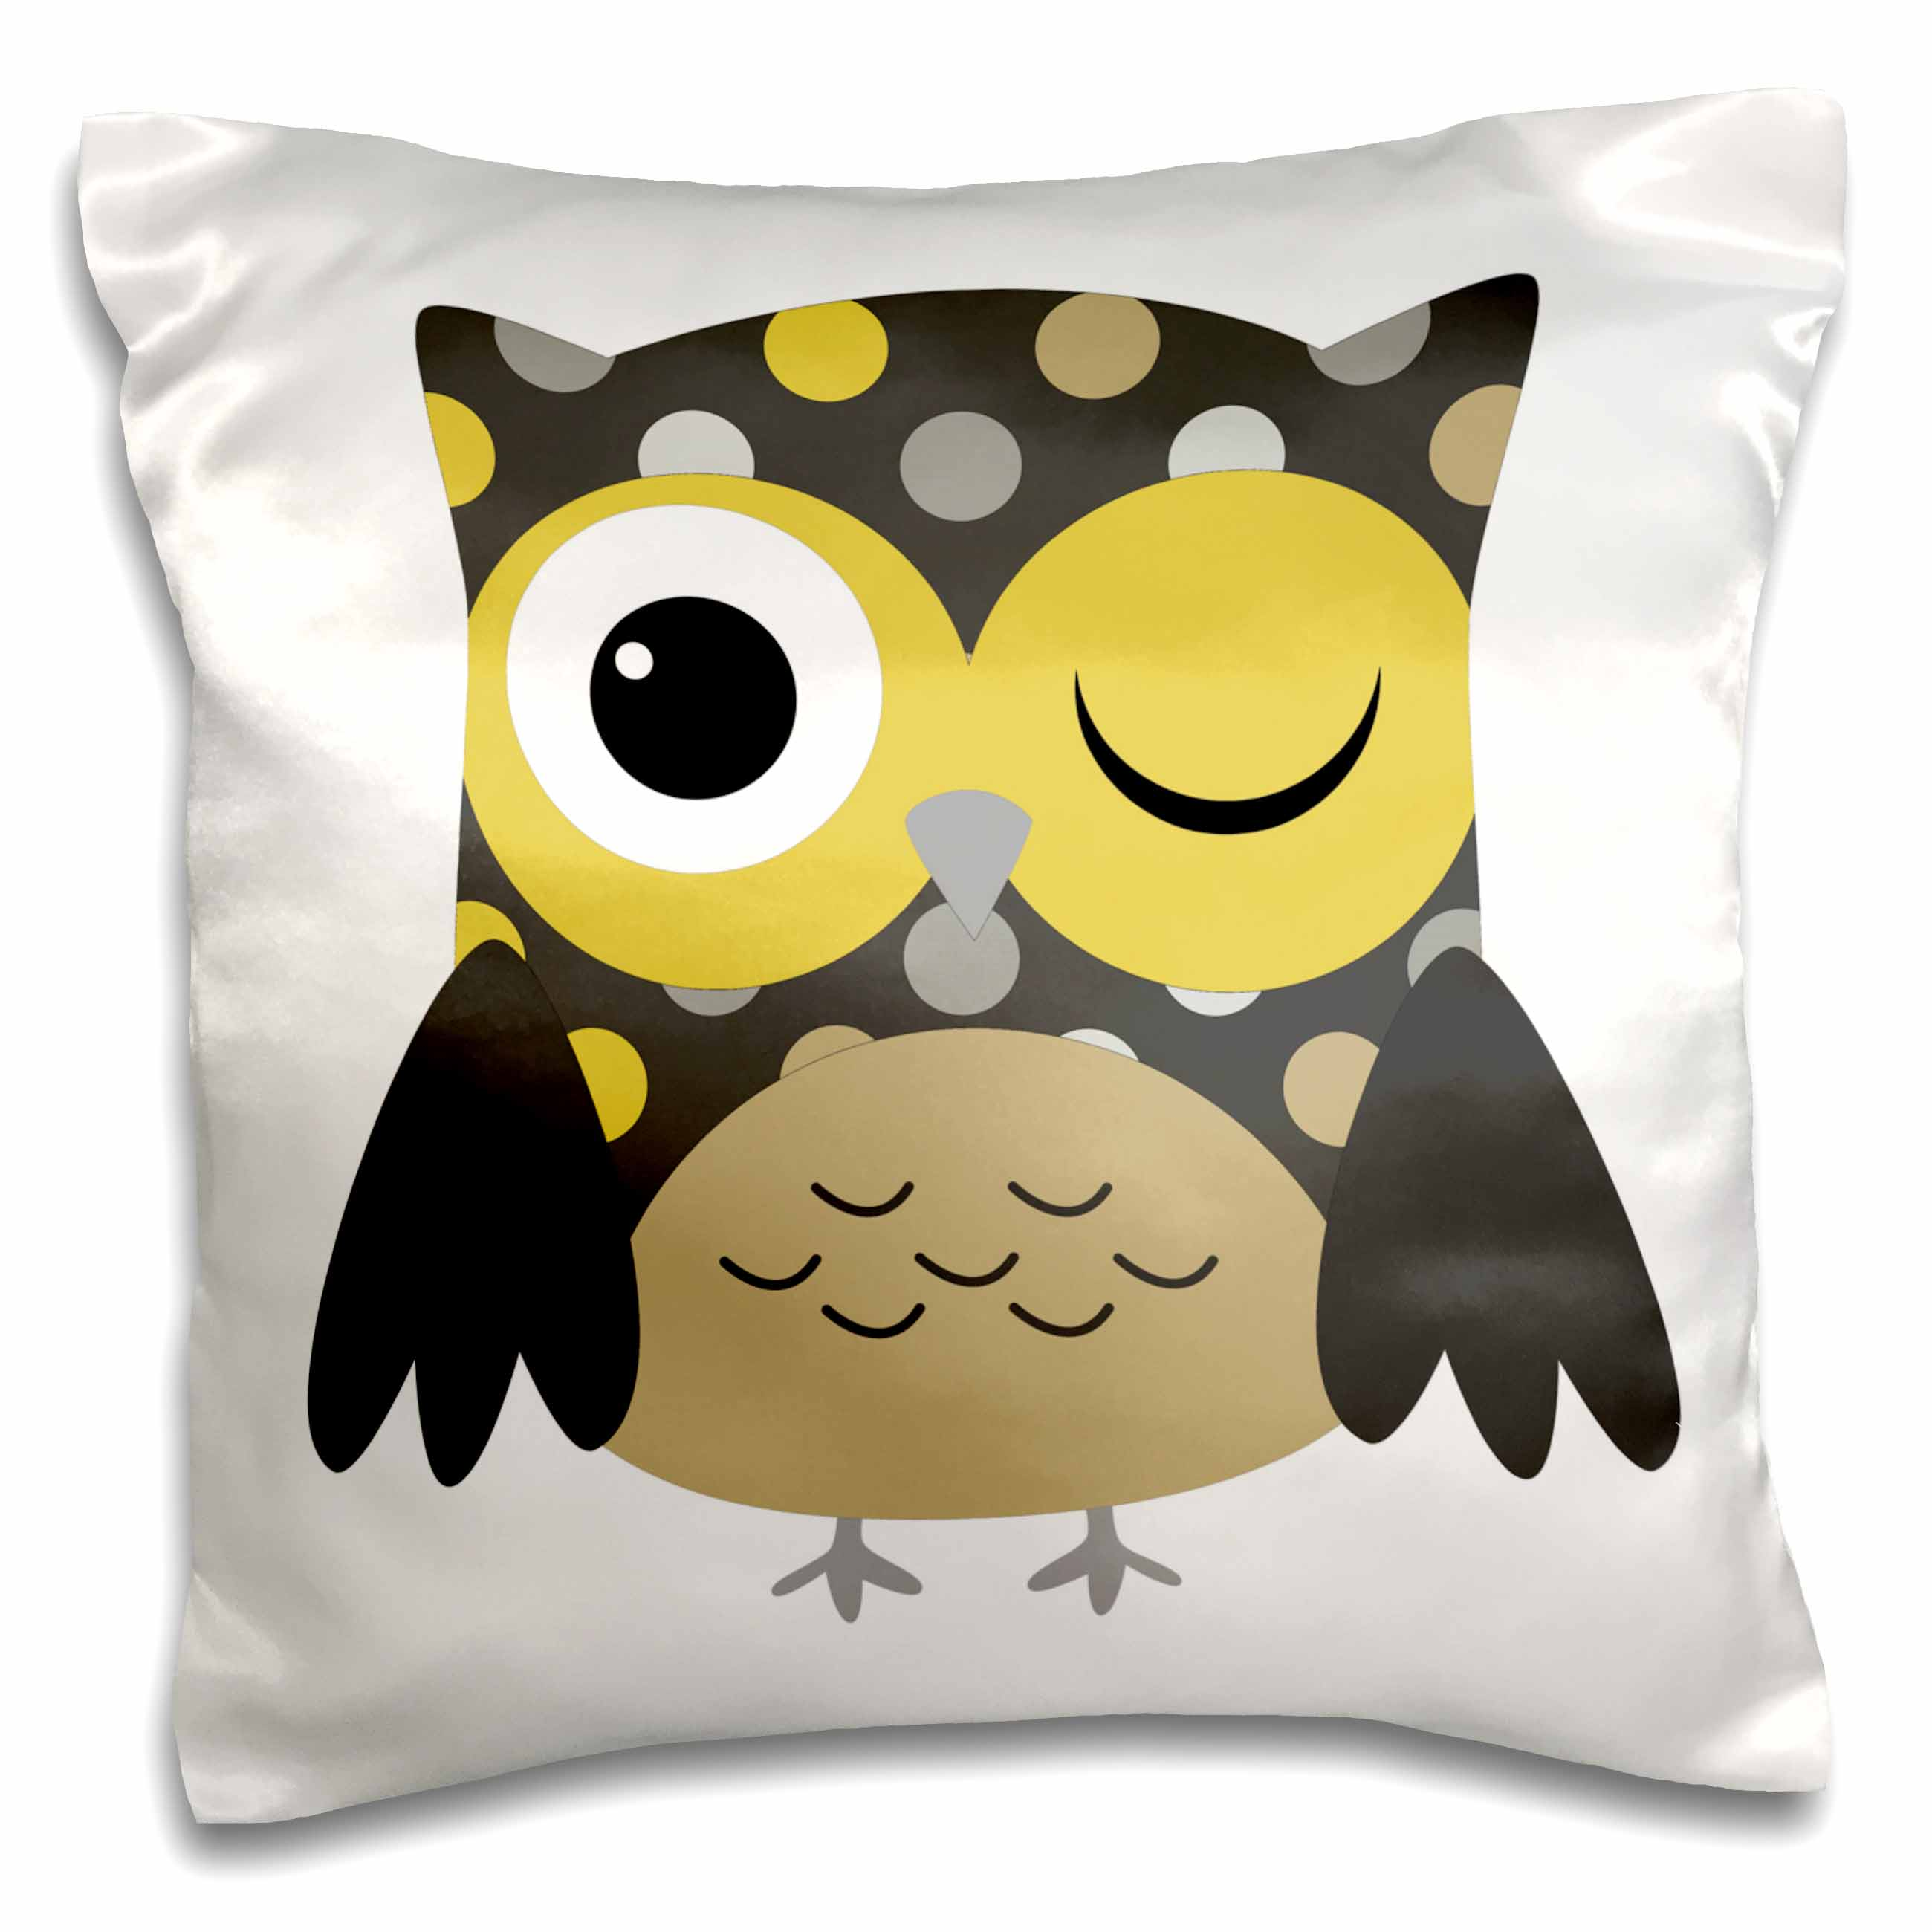 3dRose Cute Yellow Polka Dot Owl, Pillow Case, 16 by 16-inch